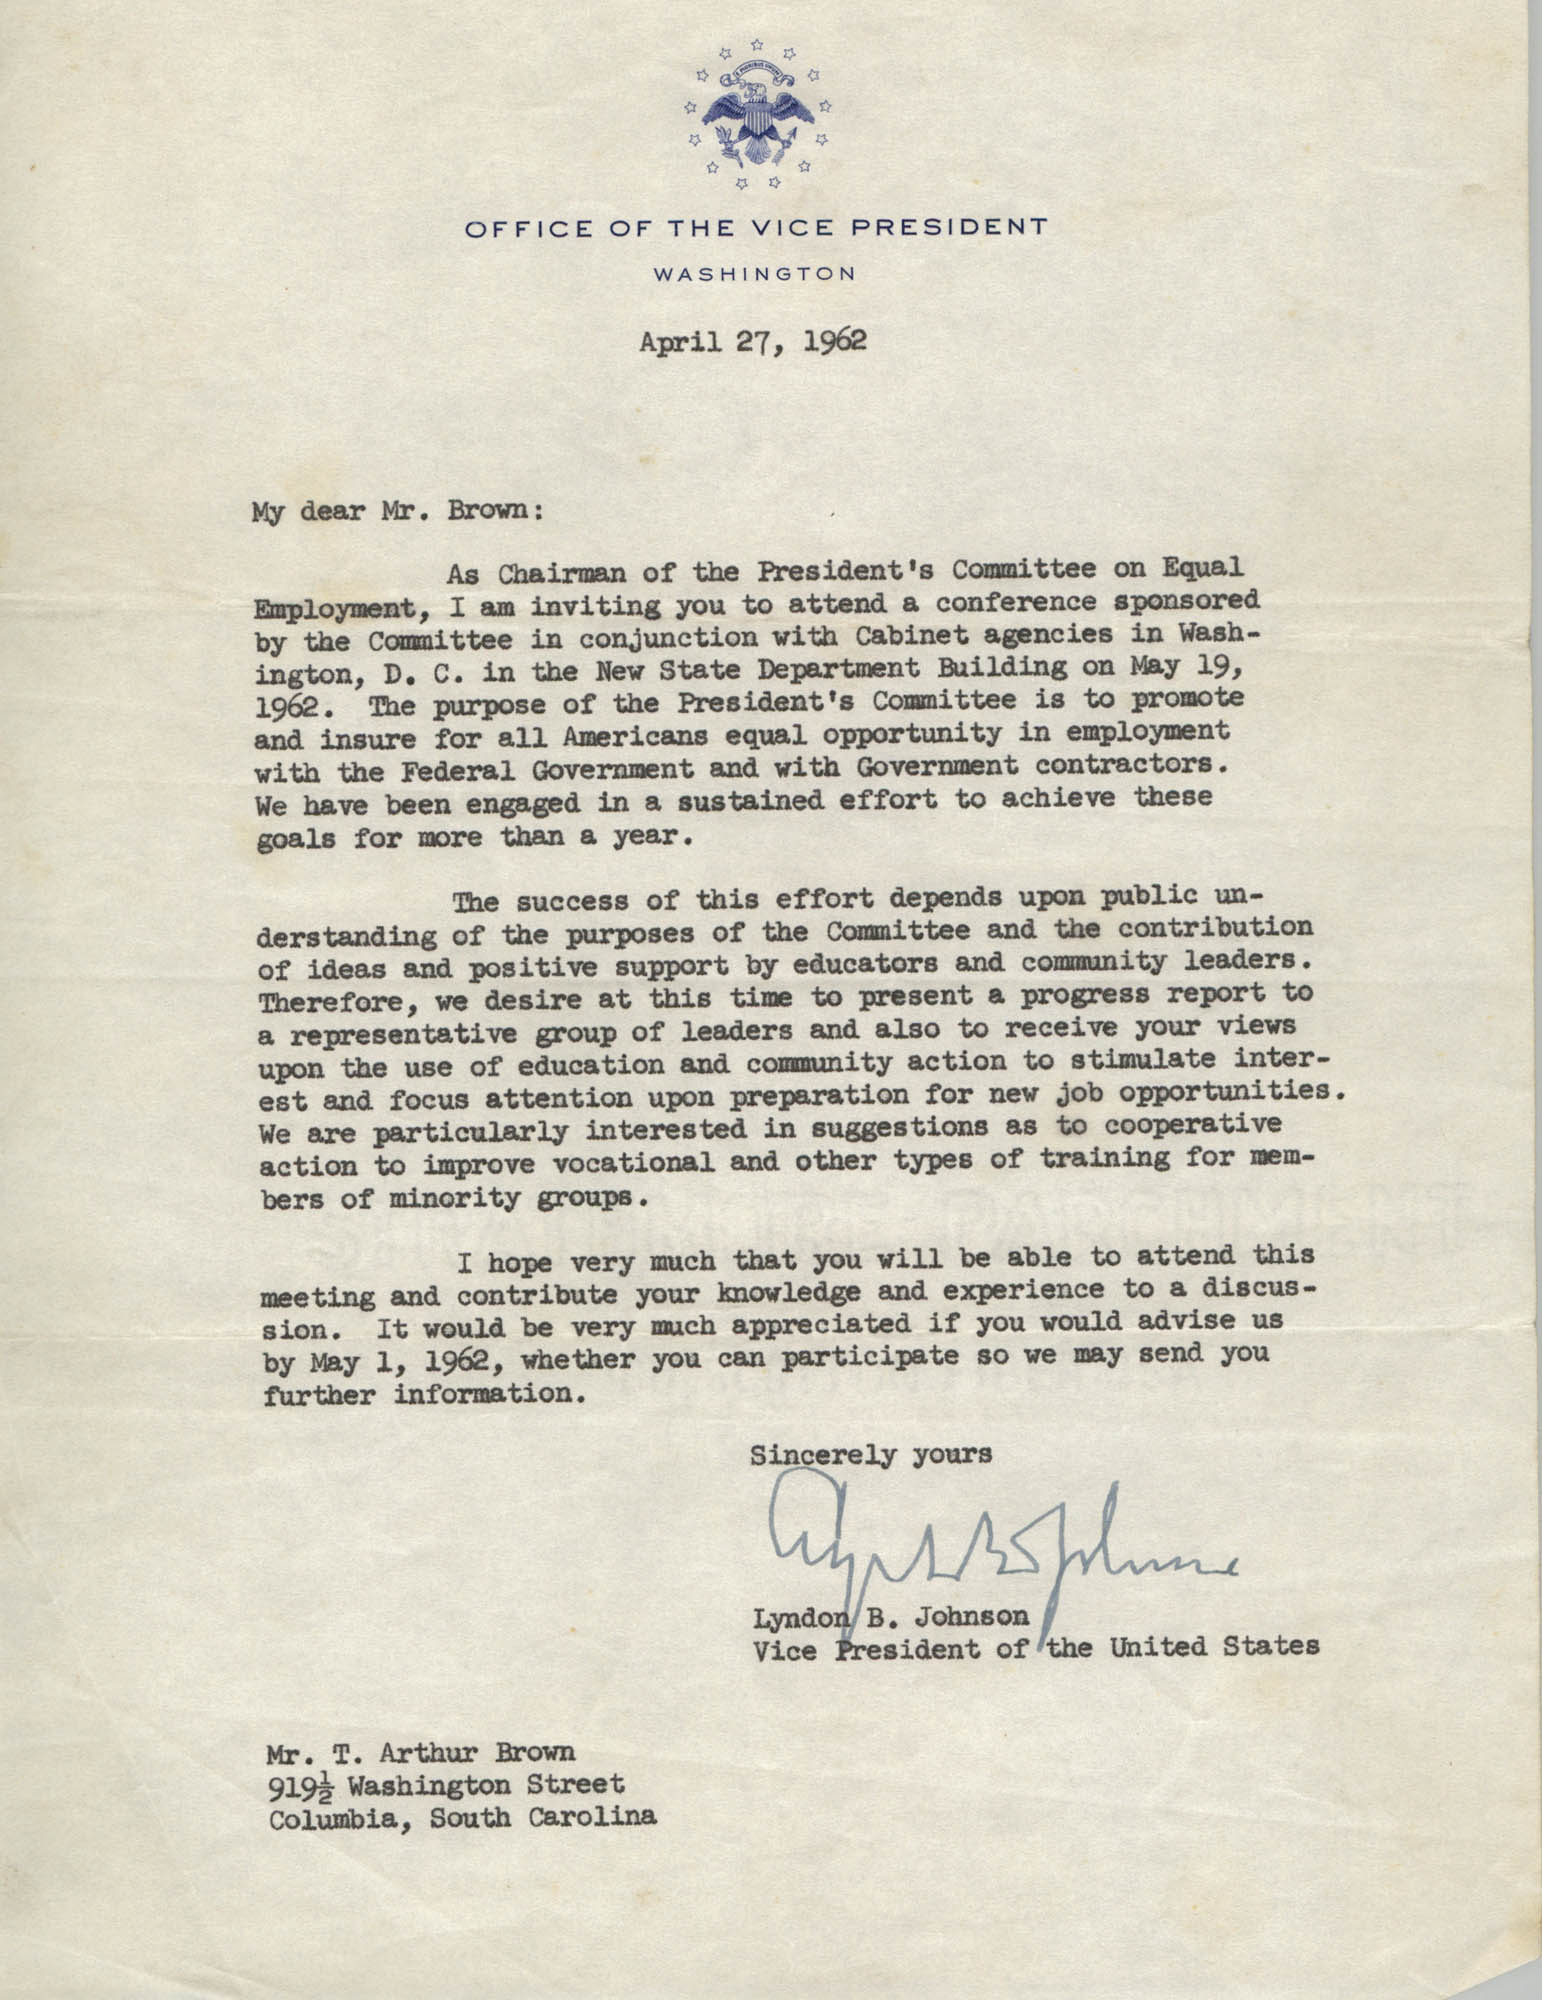 Letter from Lyndon B. Johnson to J. Arthur Brown, April 27, 1962